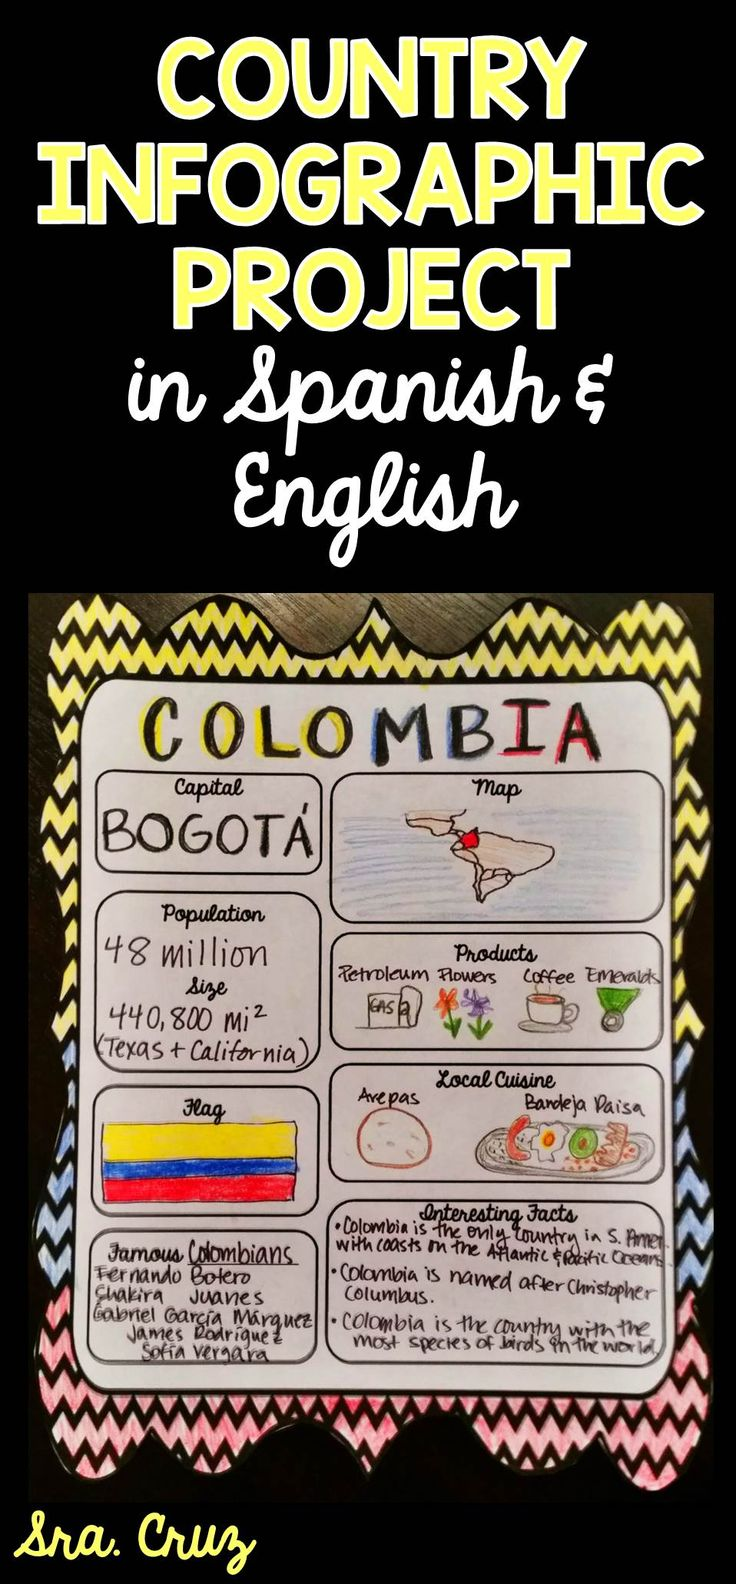 Country Project for Spanish-Speaking Countries or any country!  English and Spanish templates can be completed digitally in PPT or printed and handwritten.  https://www.teacherspayteachers.com/Product/Country-Project-Infographic-NEW-Product-50-OFF-for-24-Hours-1959376